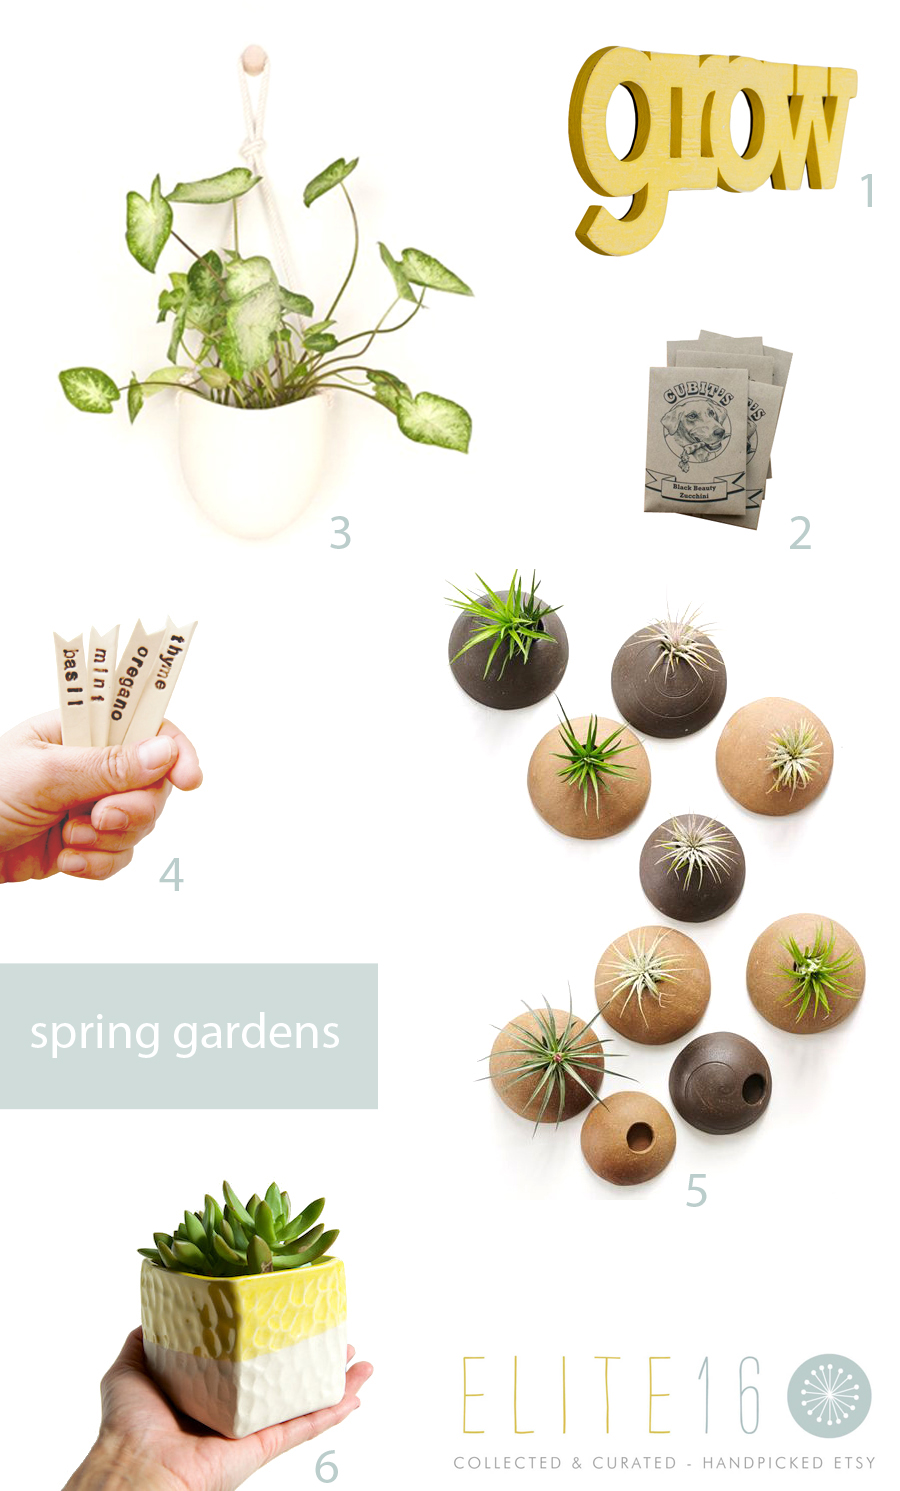 1.  GROW SIGN  by oh dier living  2.  SEED PACK  by cubits  3.  LARGE SPORA + WOOD HOOK  by light and ladder  4.  HERB GARDEN MARKERS  by alluvial  5.  WALL PLANTERS  by cor pottery  6.  CUBE PLANTER  by ross lab